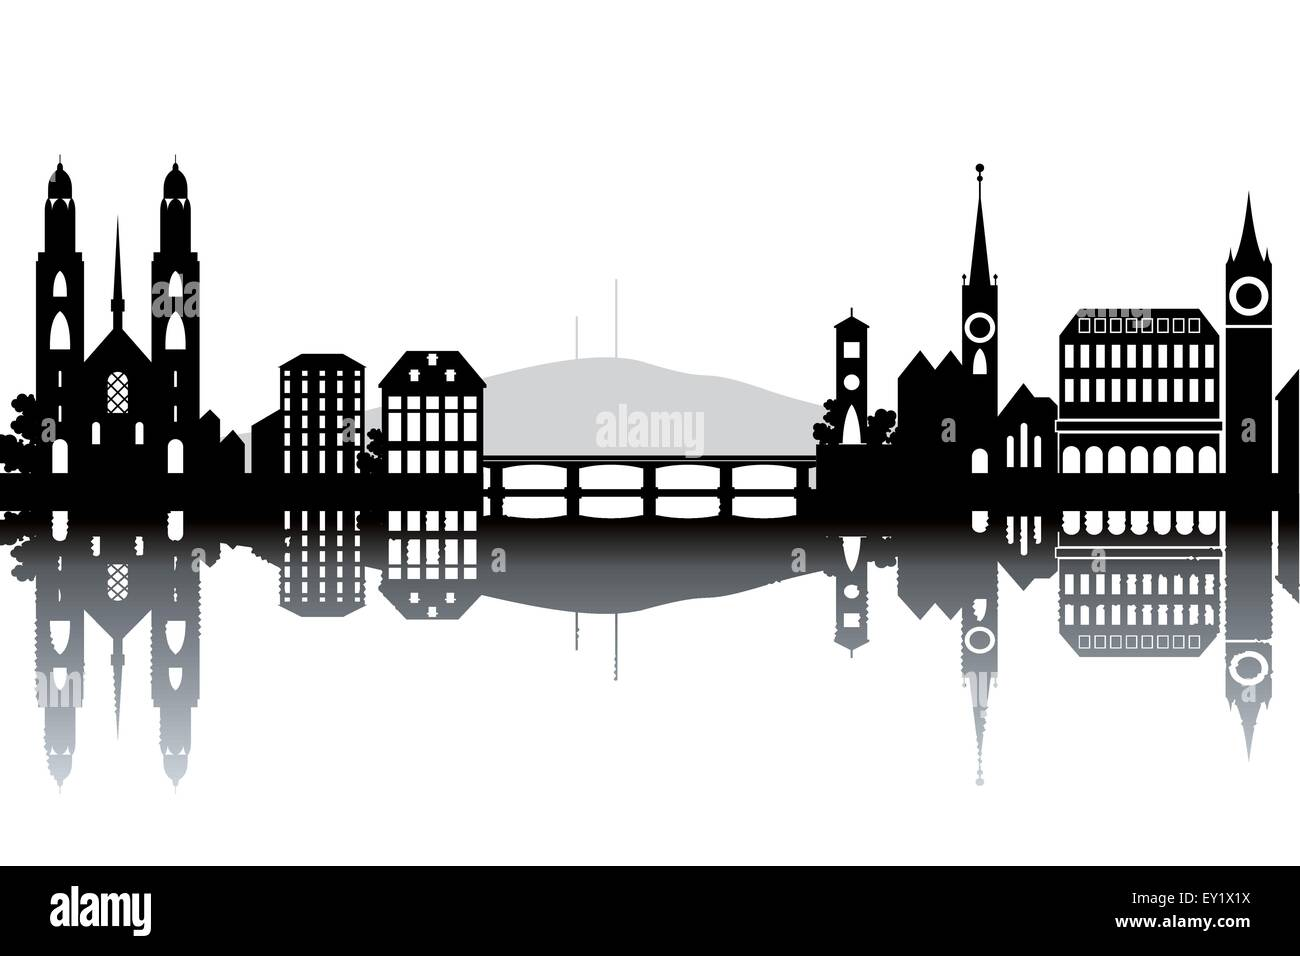 Zurich skyline - black and white vector illustration - Stock Vector